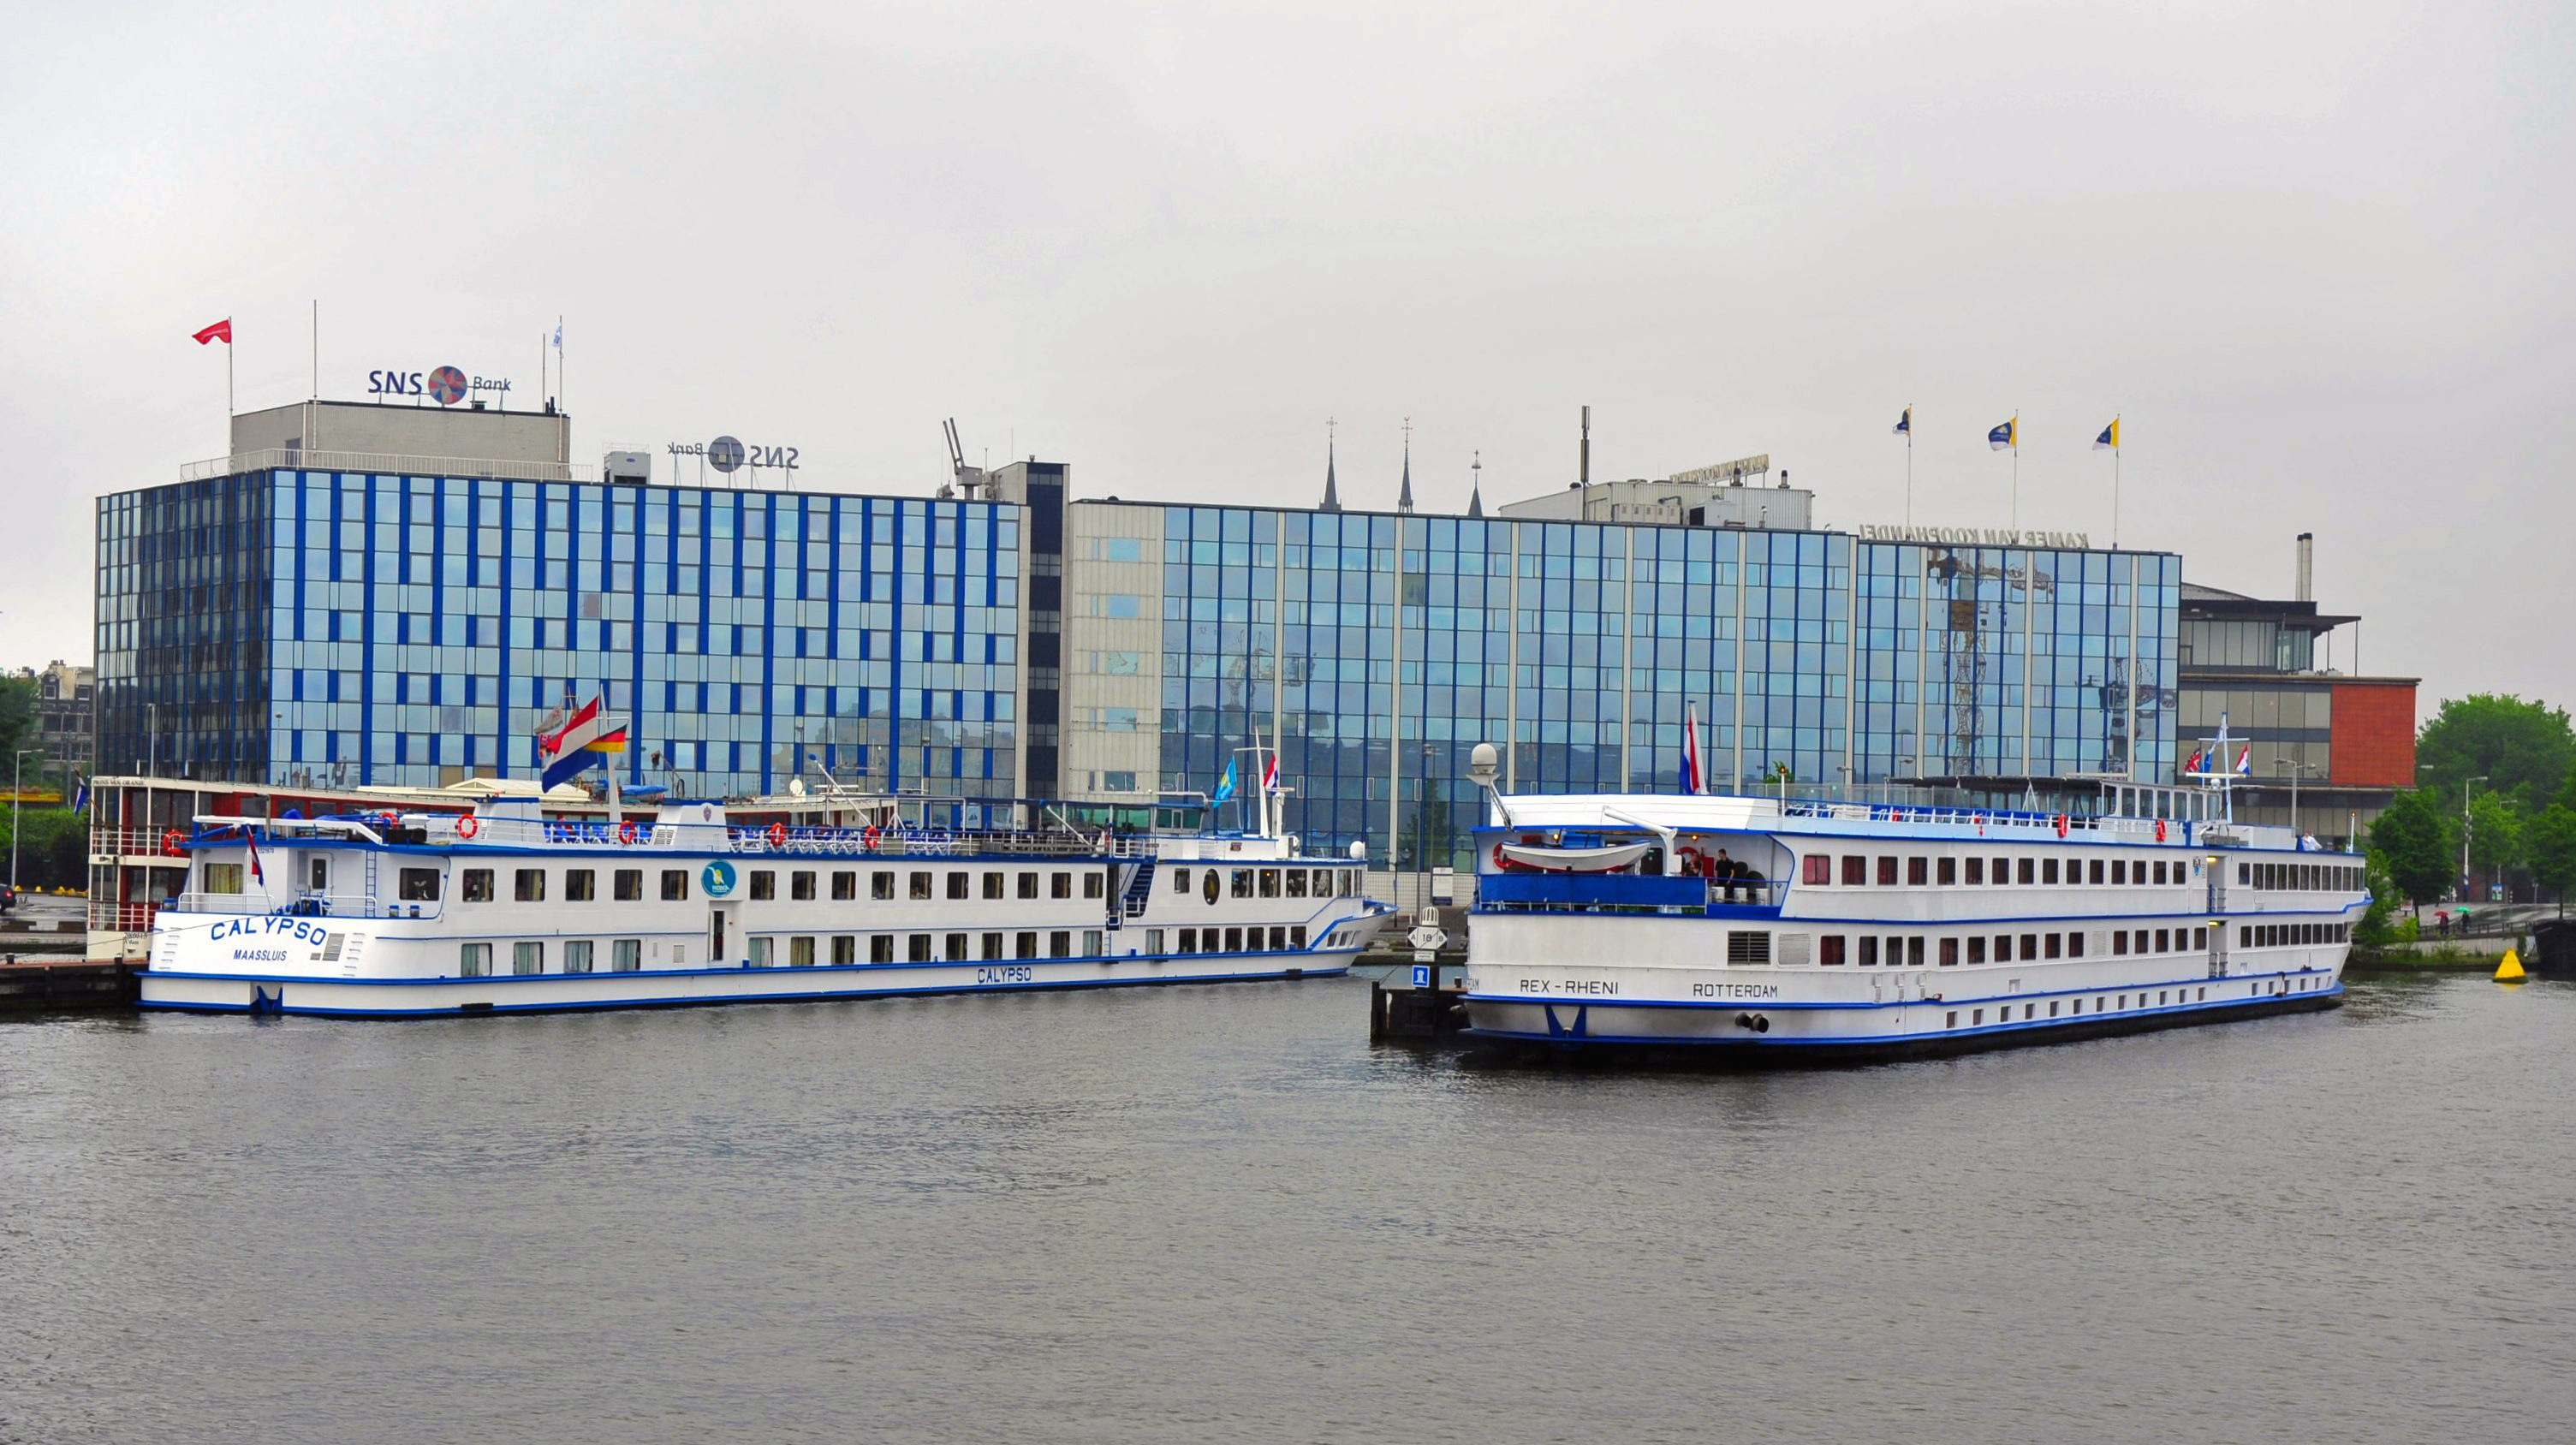 FileAmsterdam  River Cruise Ships 01jpg  Wikimedia Commons